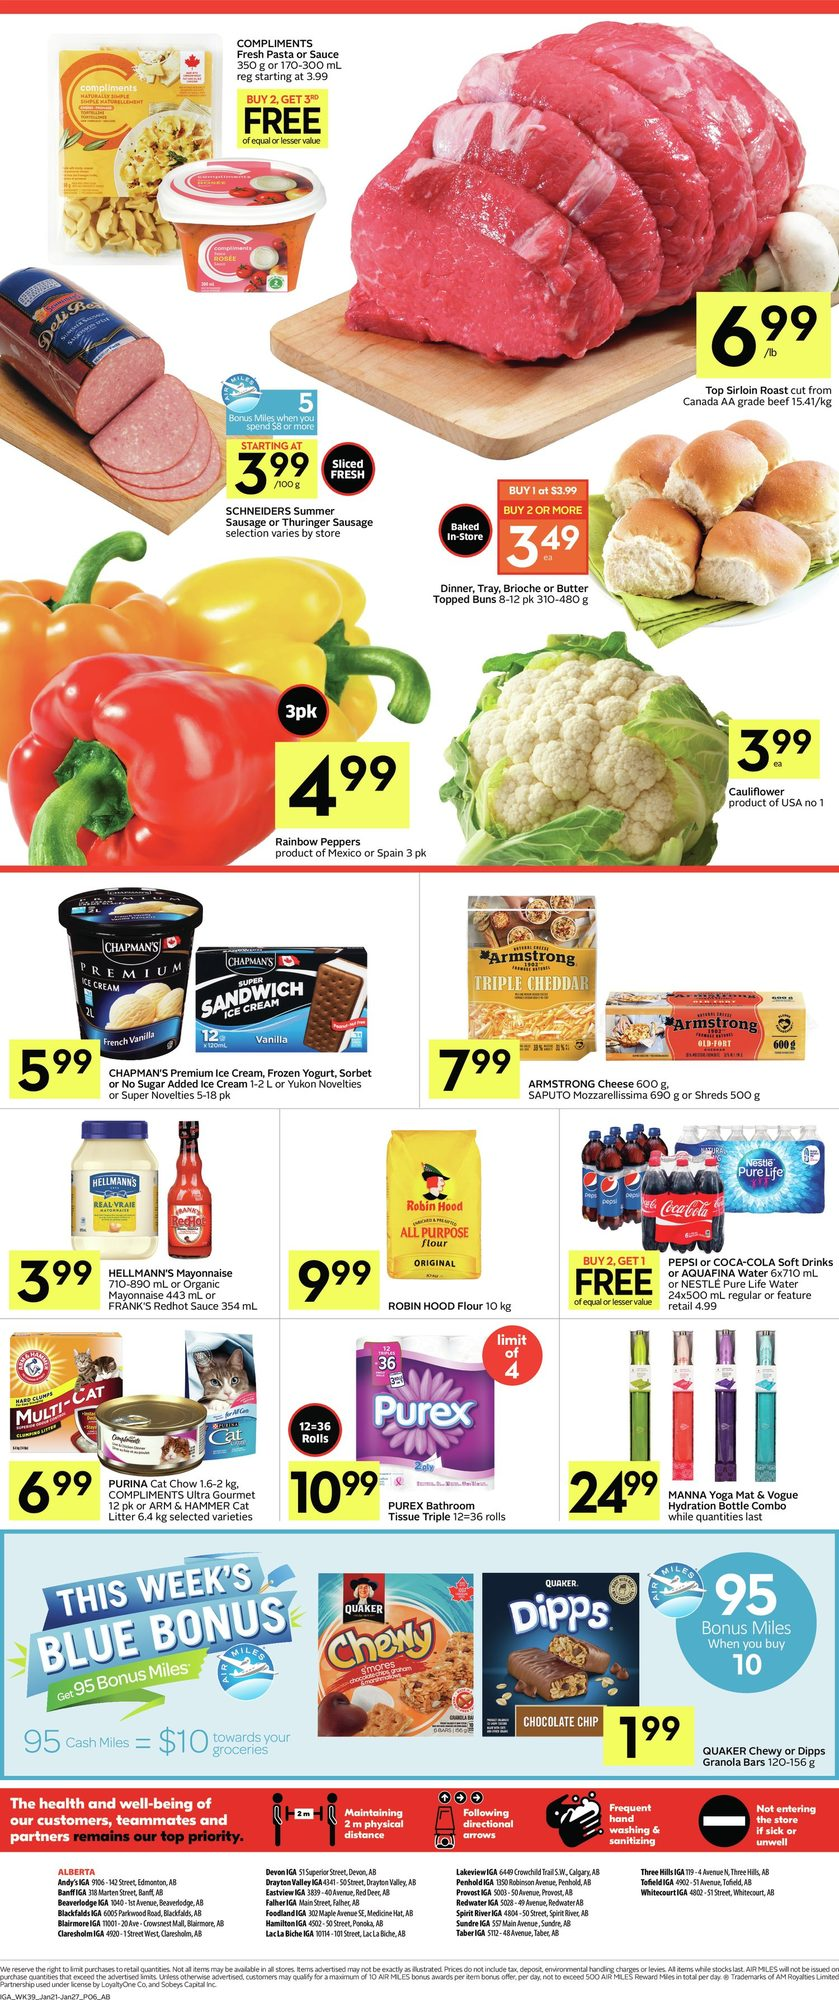 IGA - Weekly Flyer Specials - Page 6